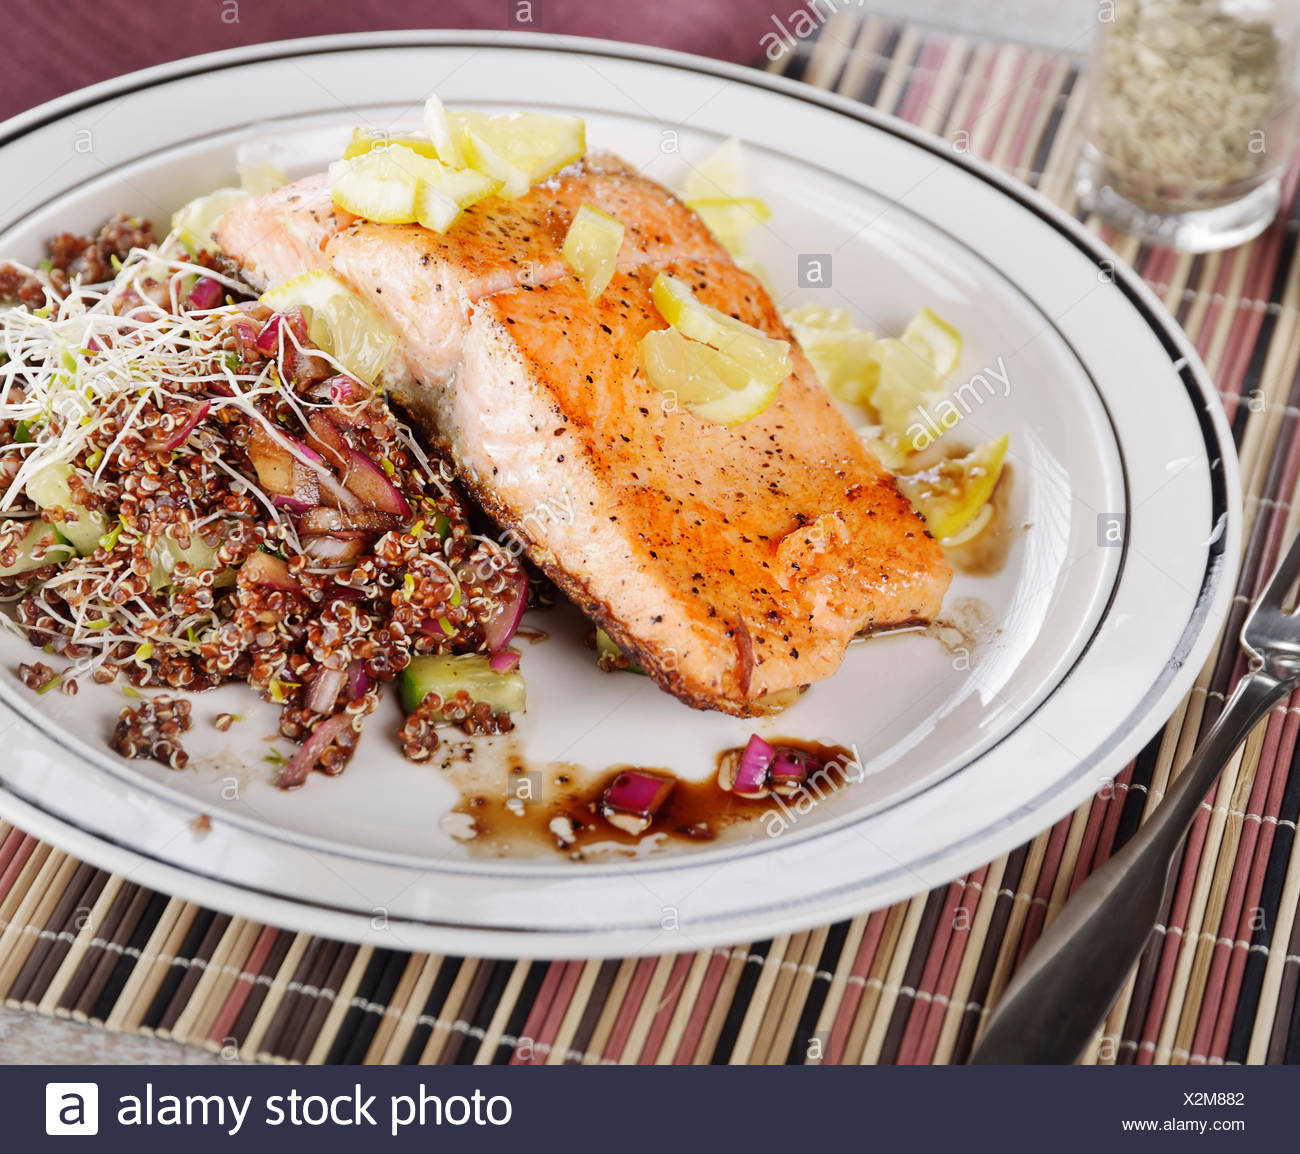 Salmon With Lemon And Red Quinoa Salad Stock Photo Alamy